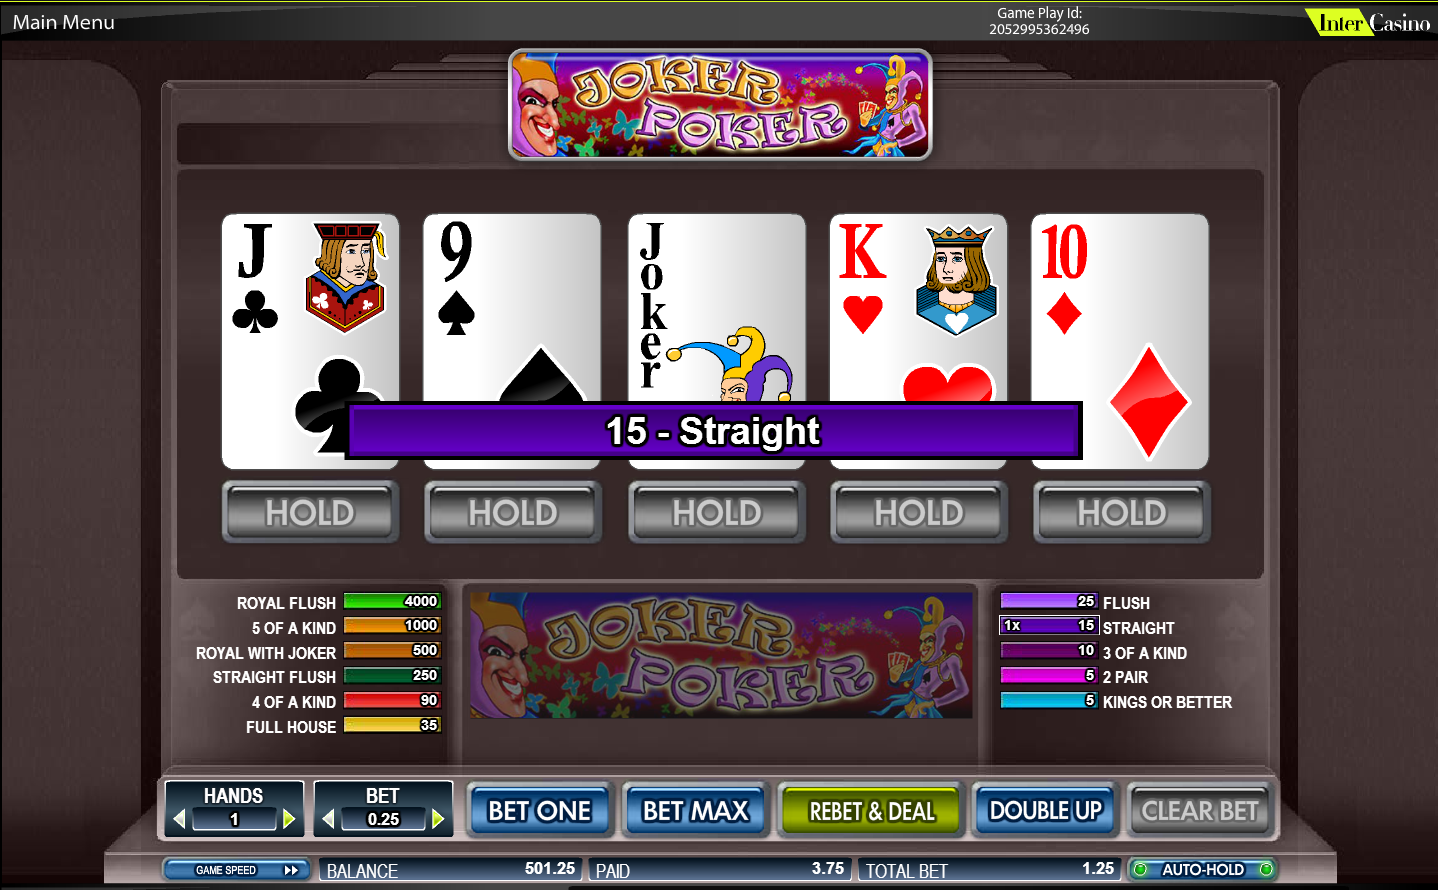 play casino online joker poker